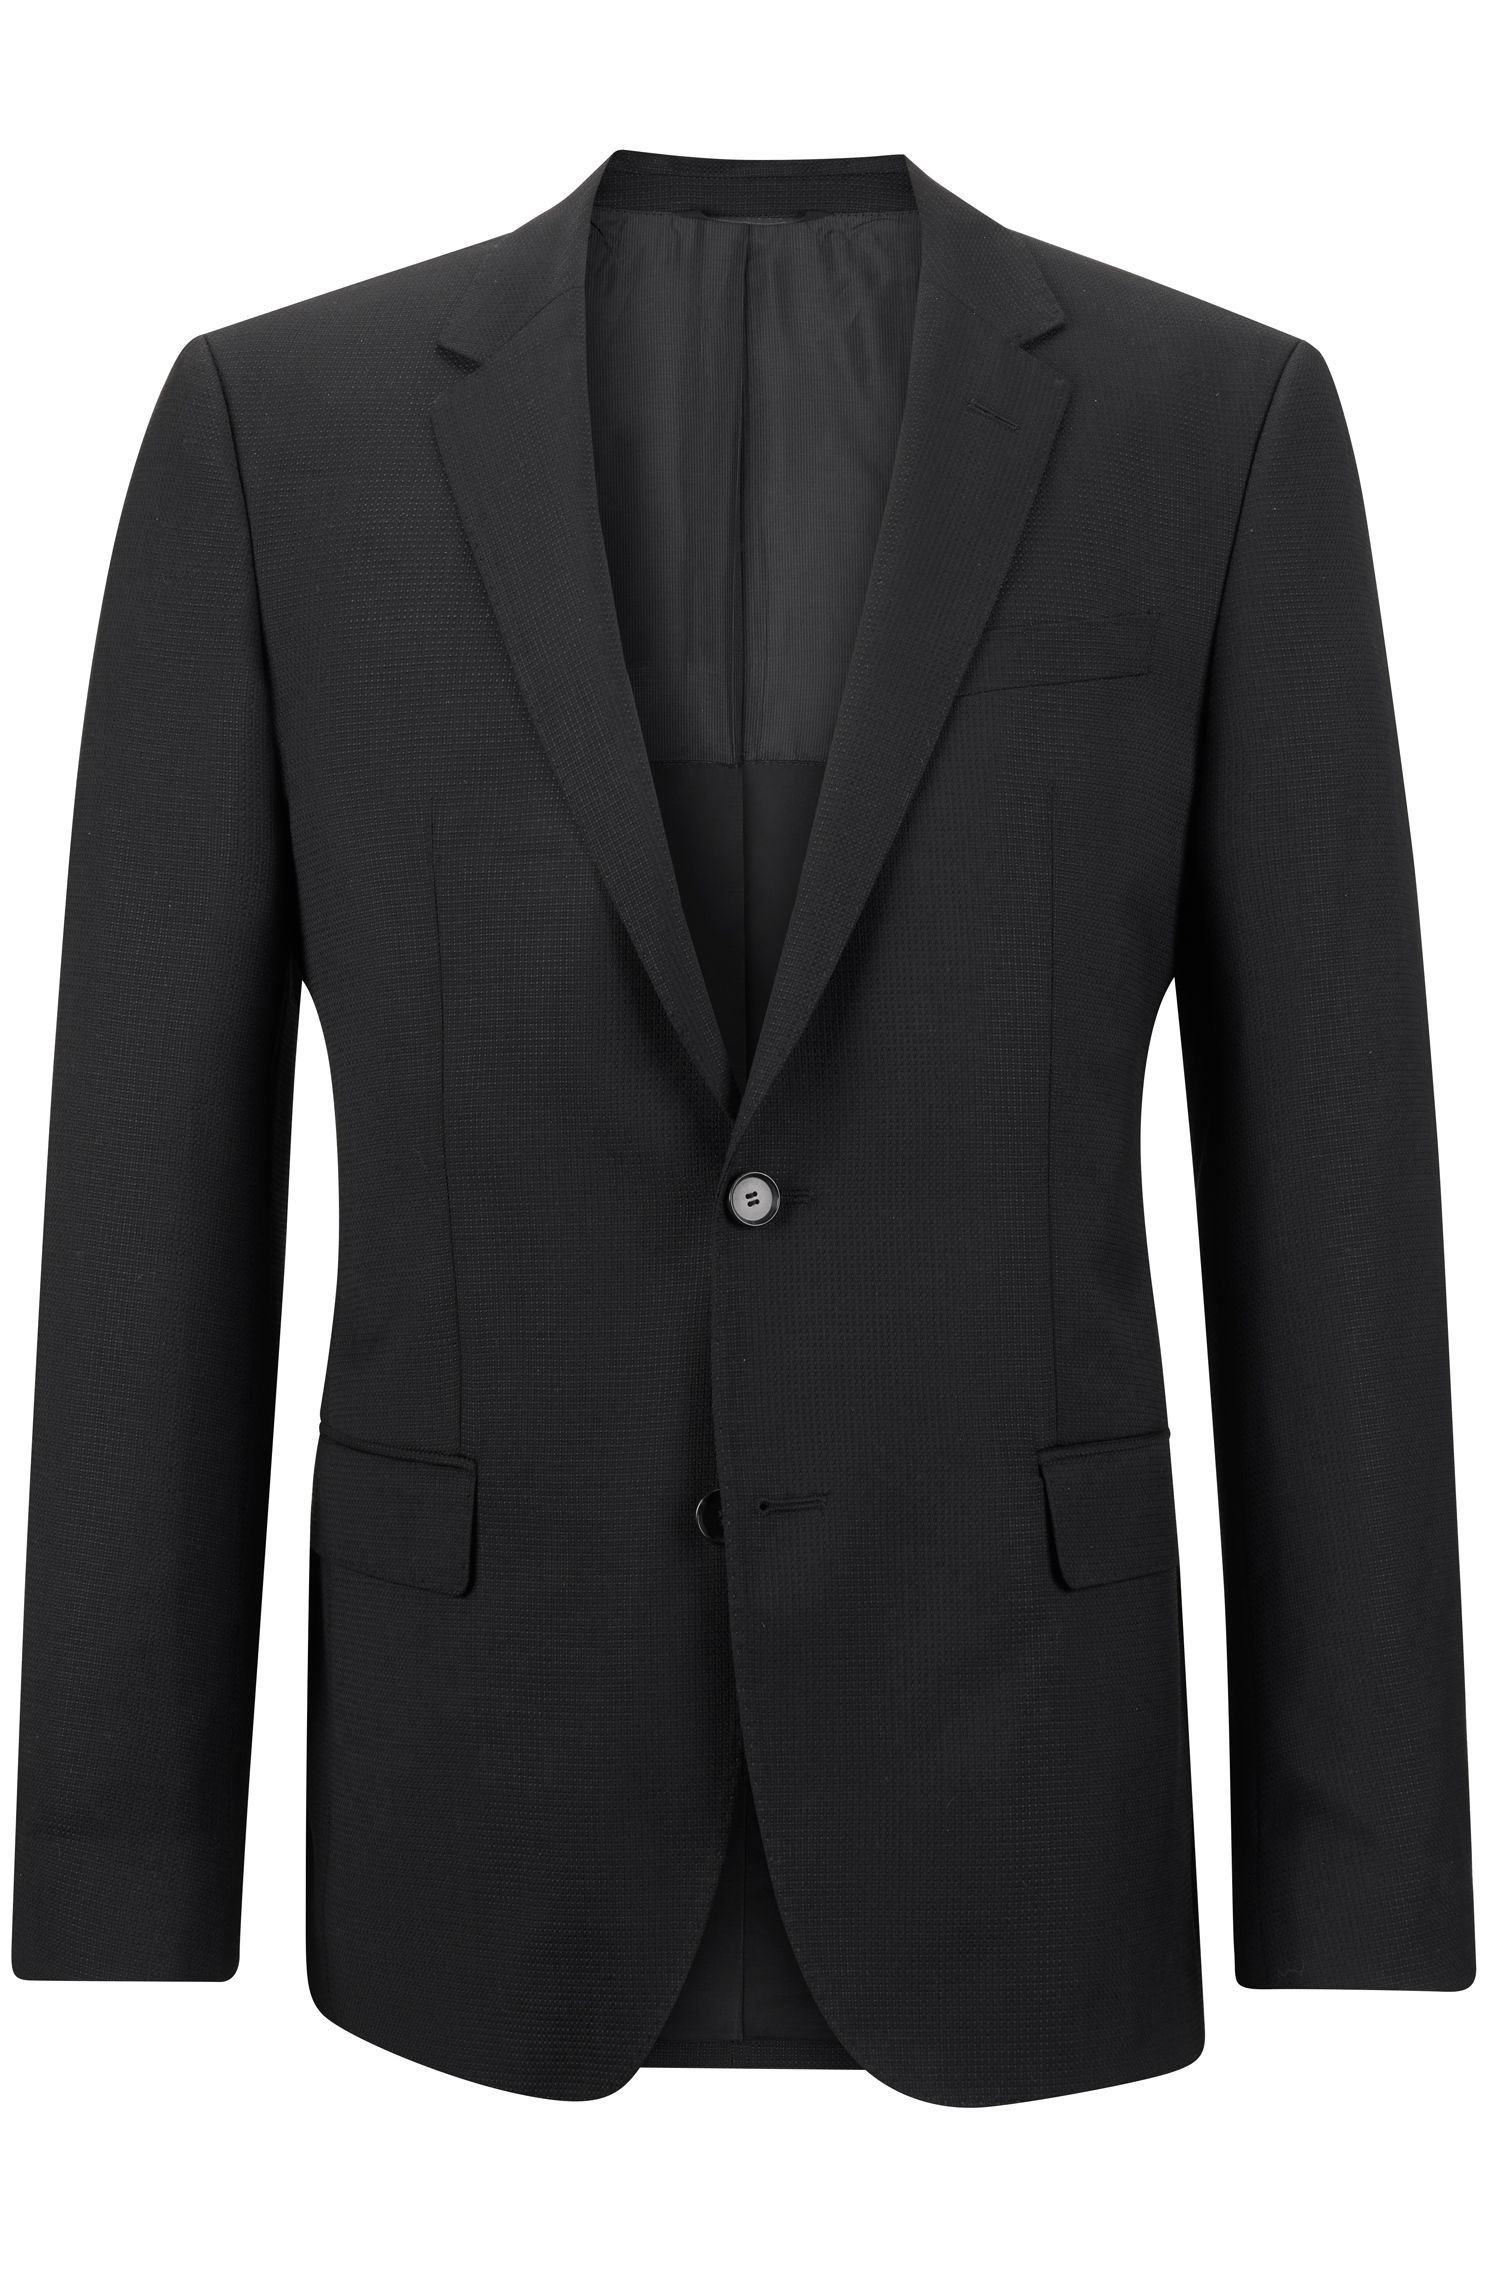 Virgin Wool Sport Coat, Slim Fit | Hutch